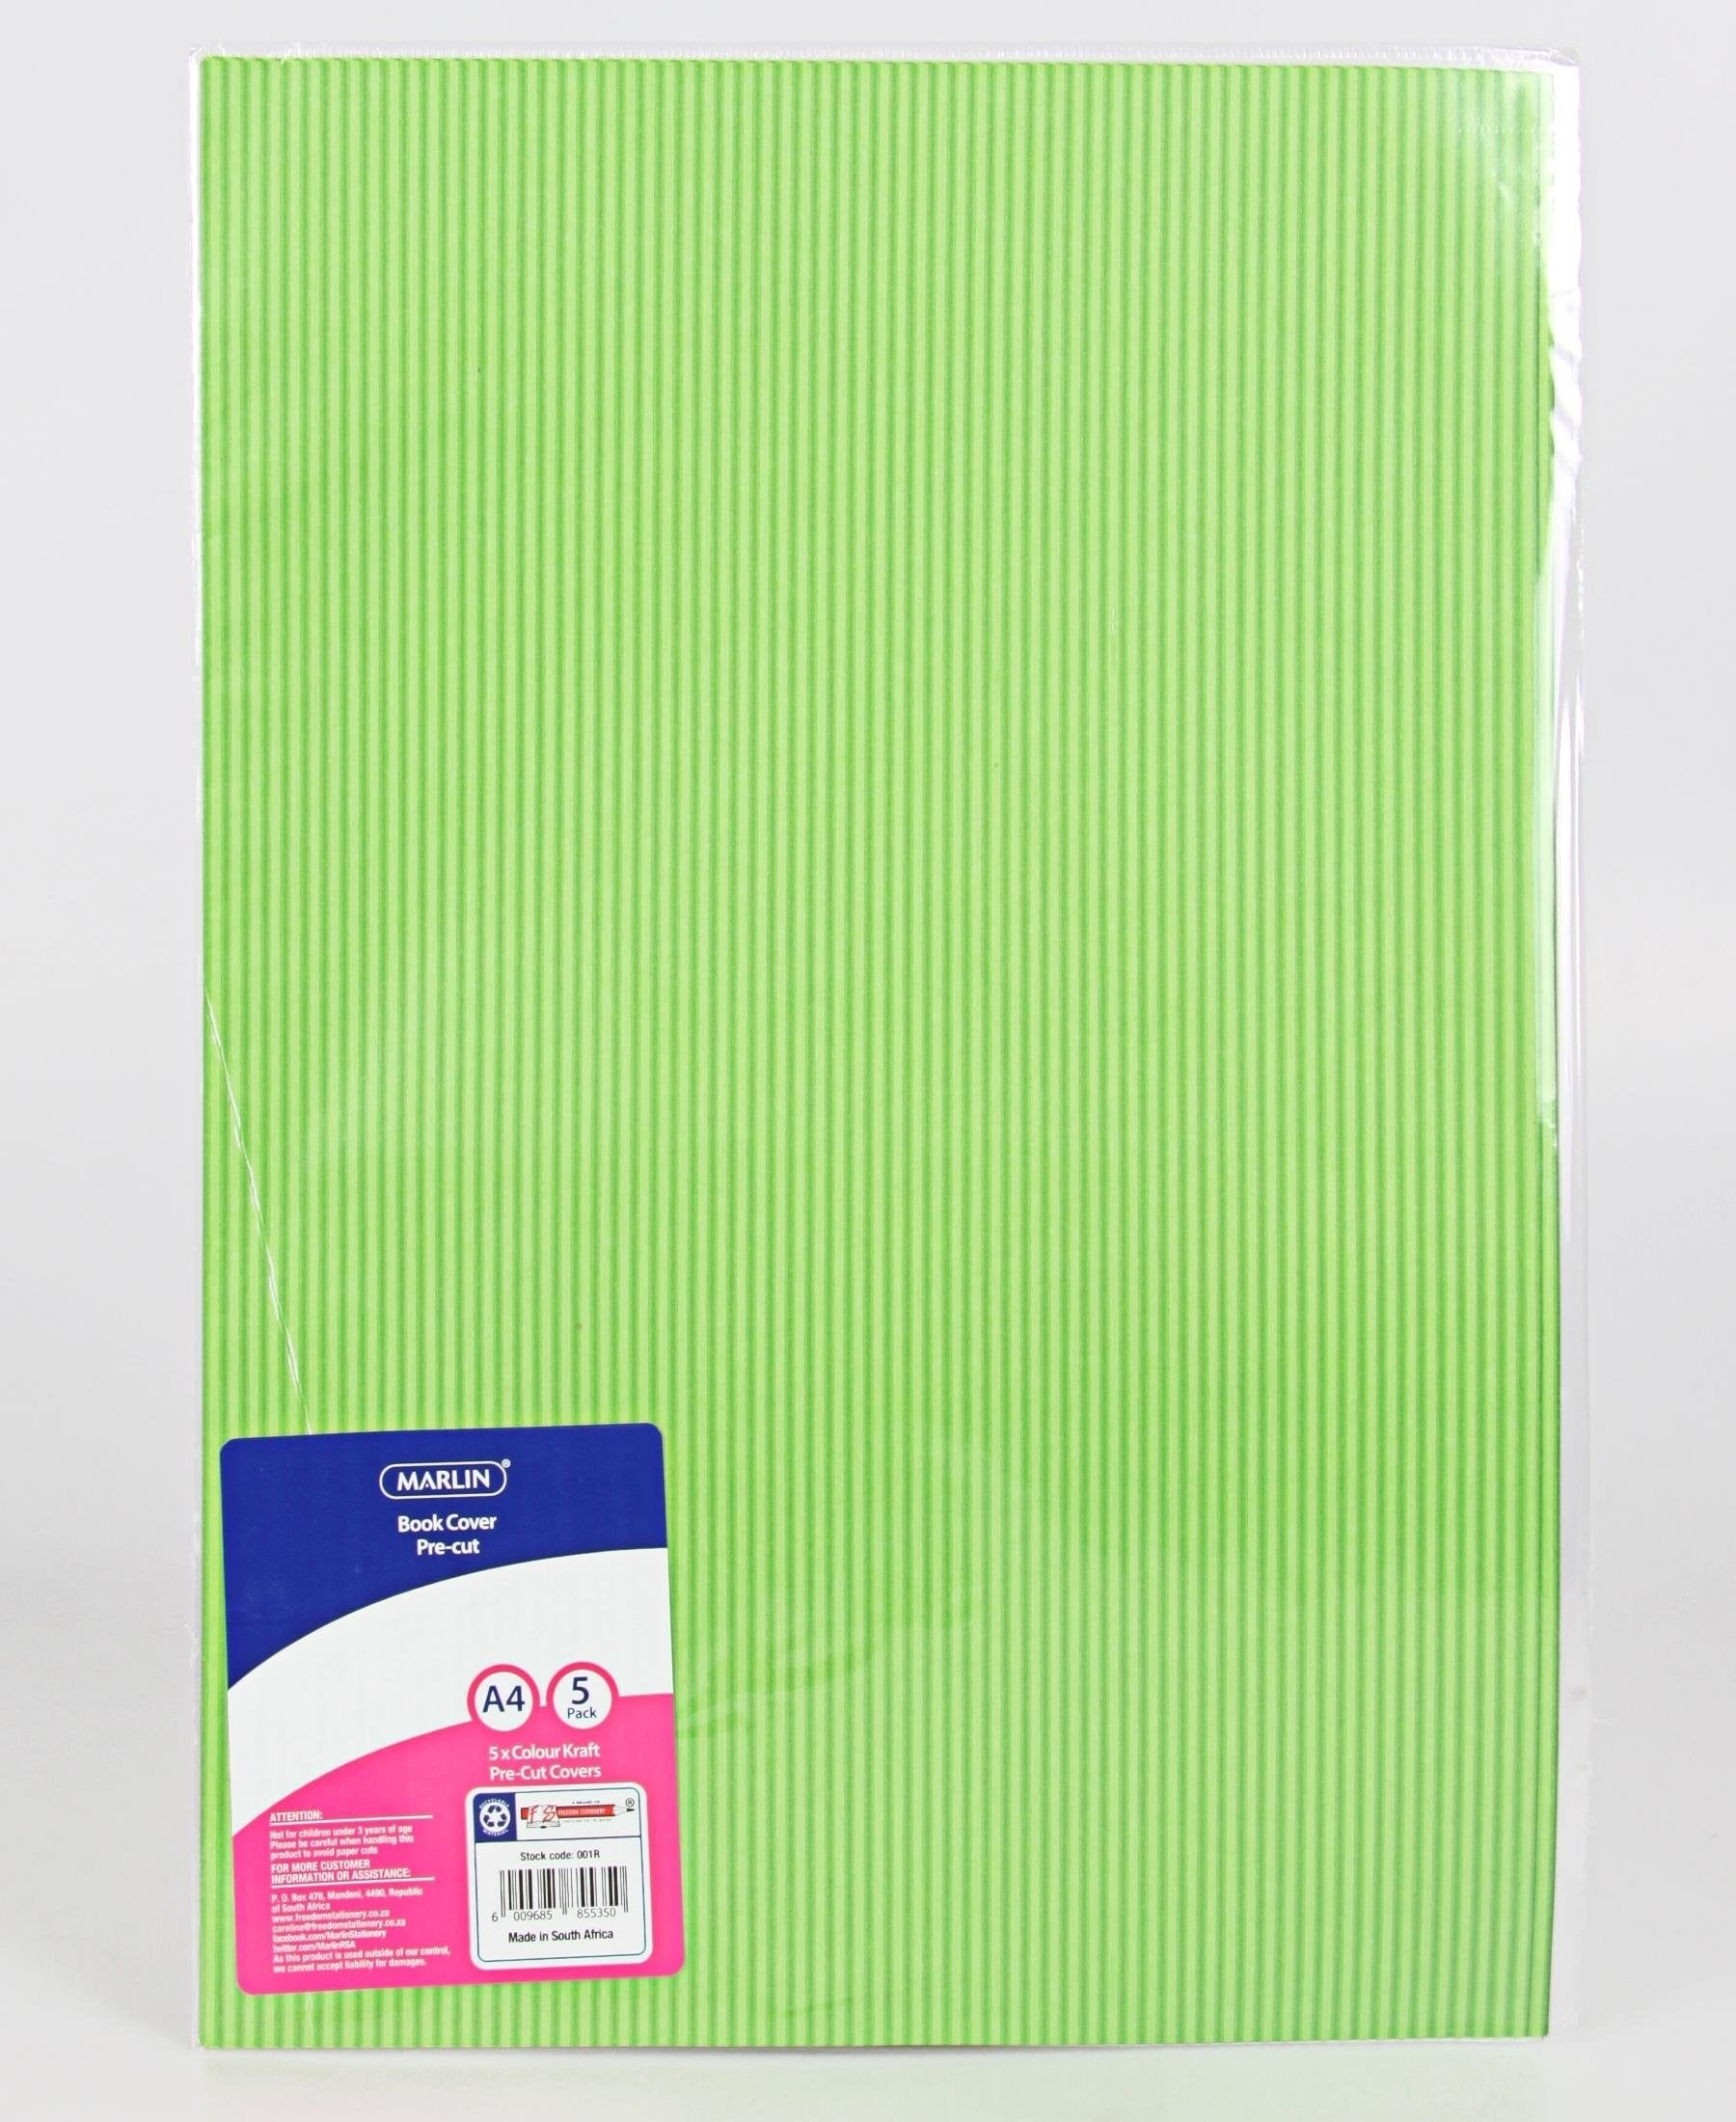 Marlin 5 Pack A4 Kraft Precut Book Covers - Green